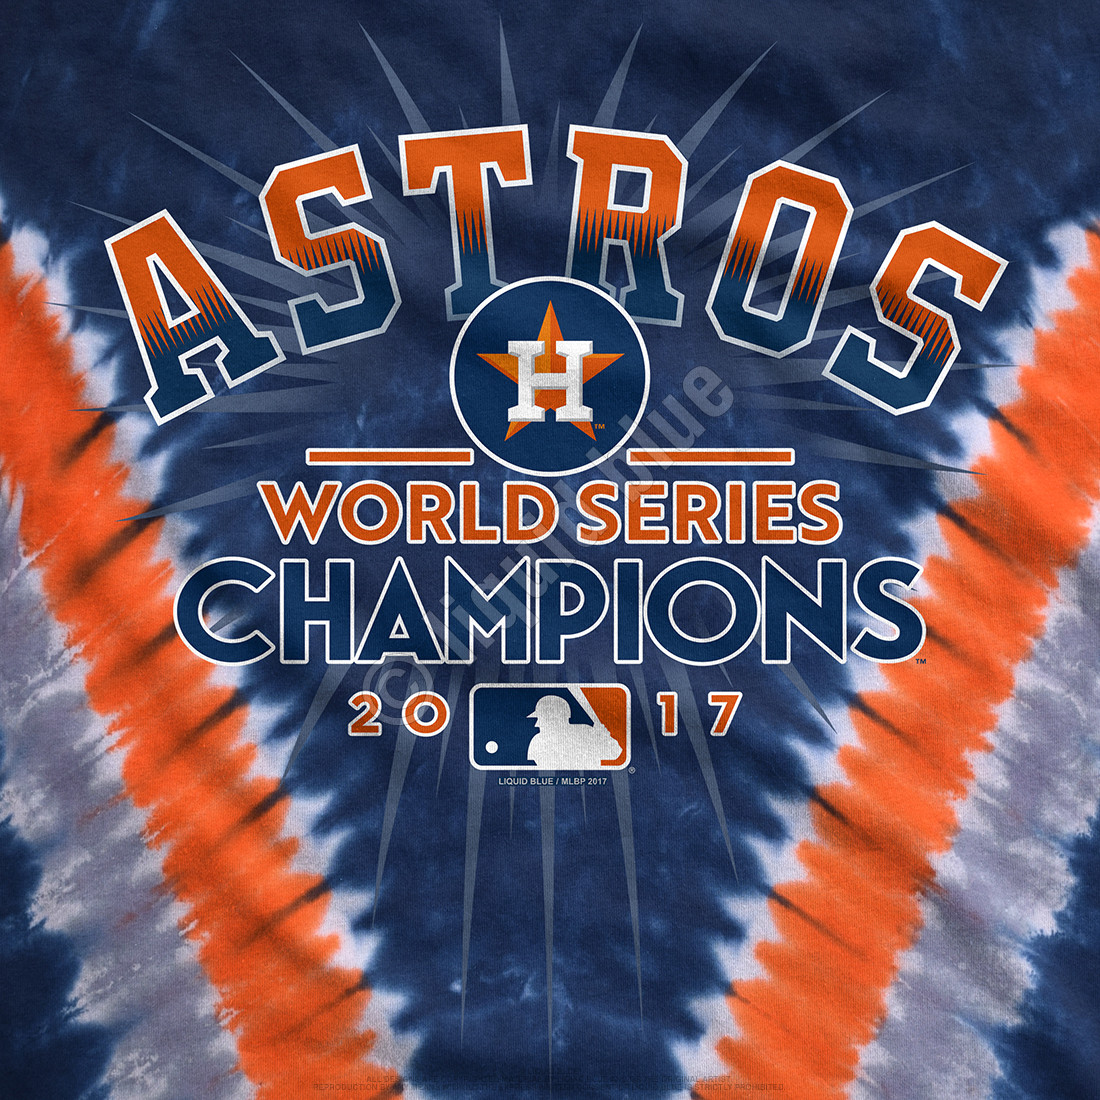 low priced 4457b 3ea14 Houston Astros World Series Champions V Tie-Dye T-Shirt Clearance 50% OFF